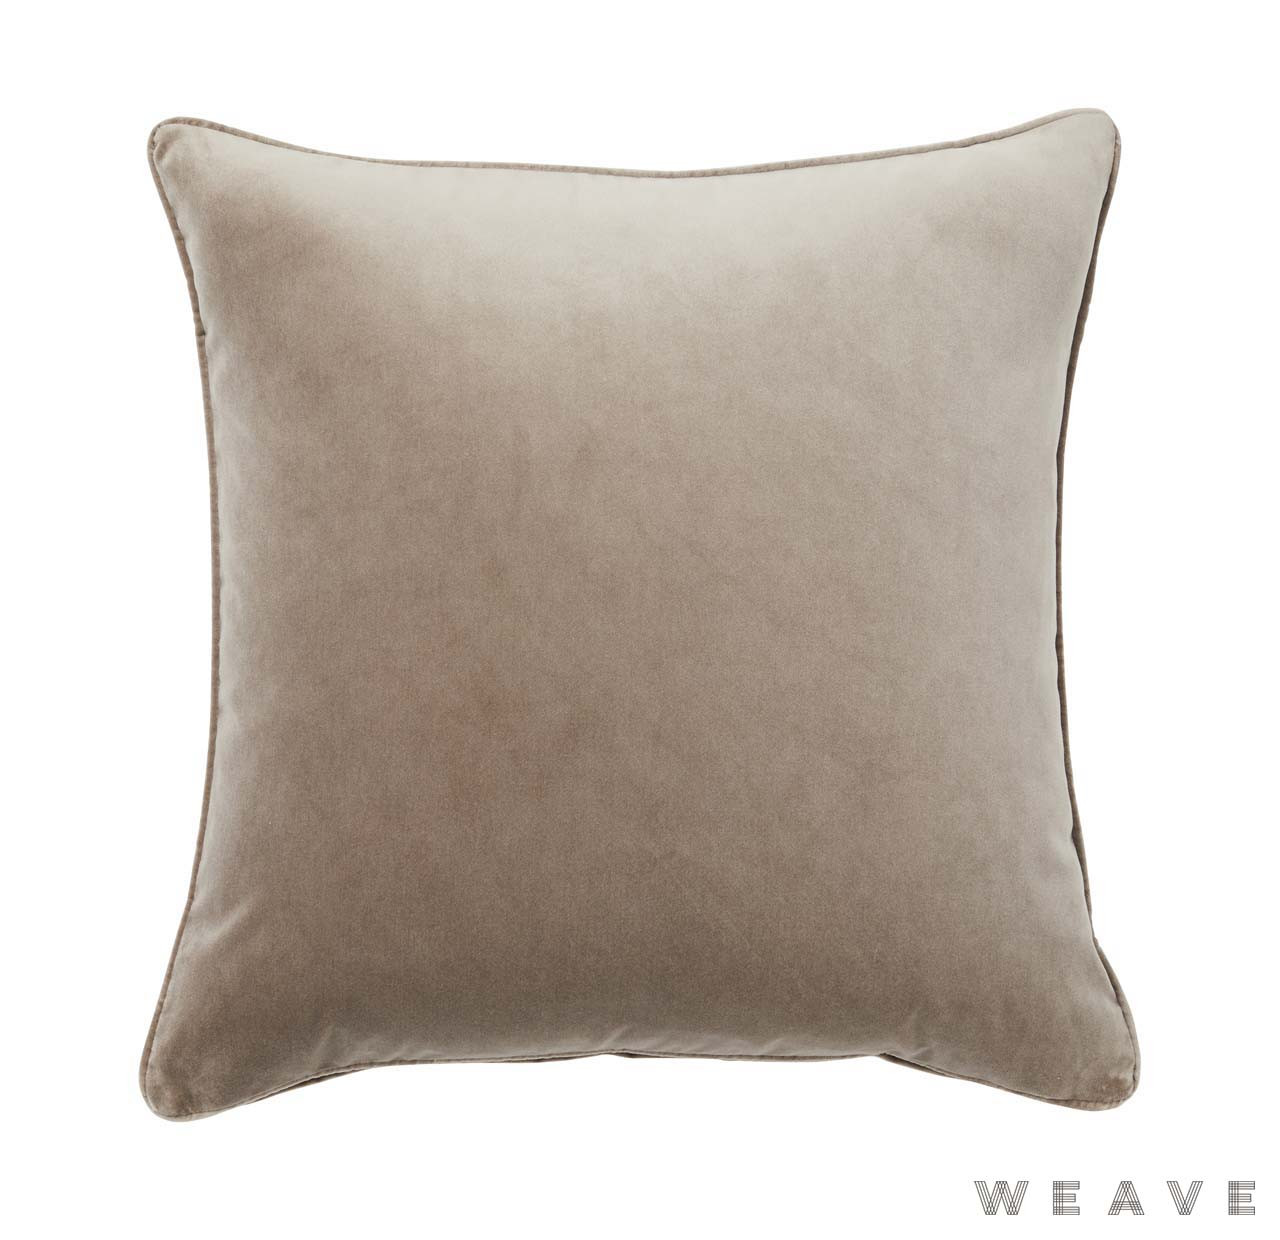 Weave - Zoe Cushion - Truffle (Pack of 2)  | Cusion Fabric - Beige, Plain, Weave